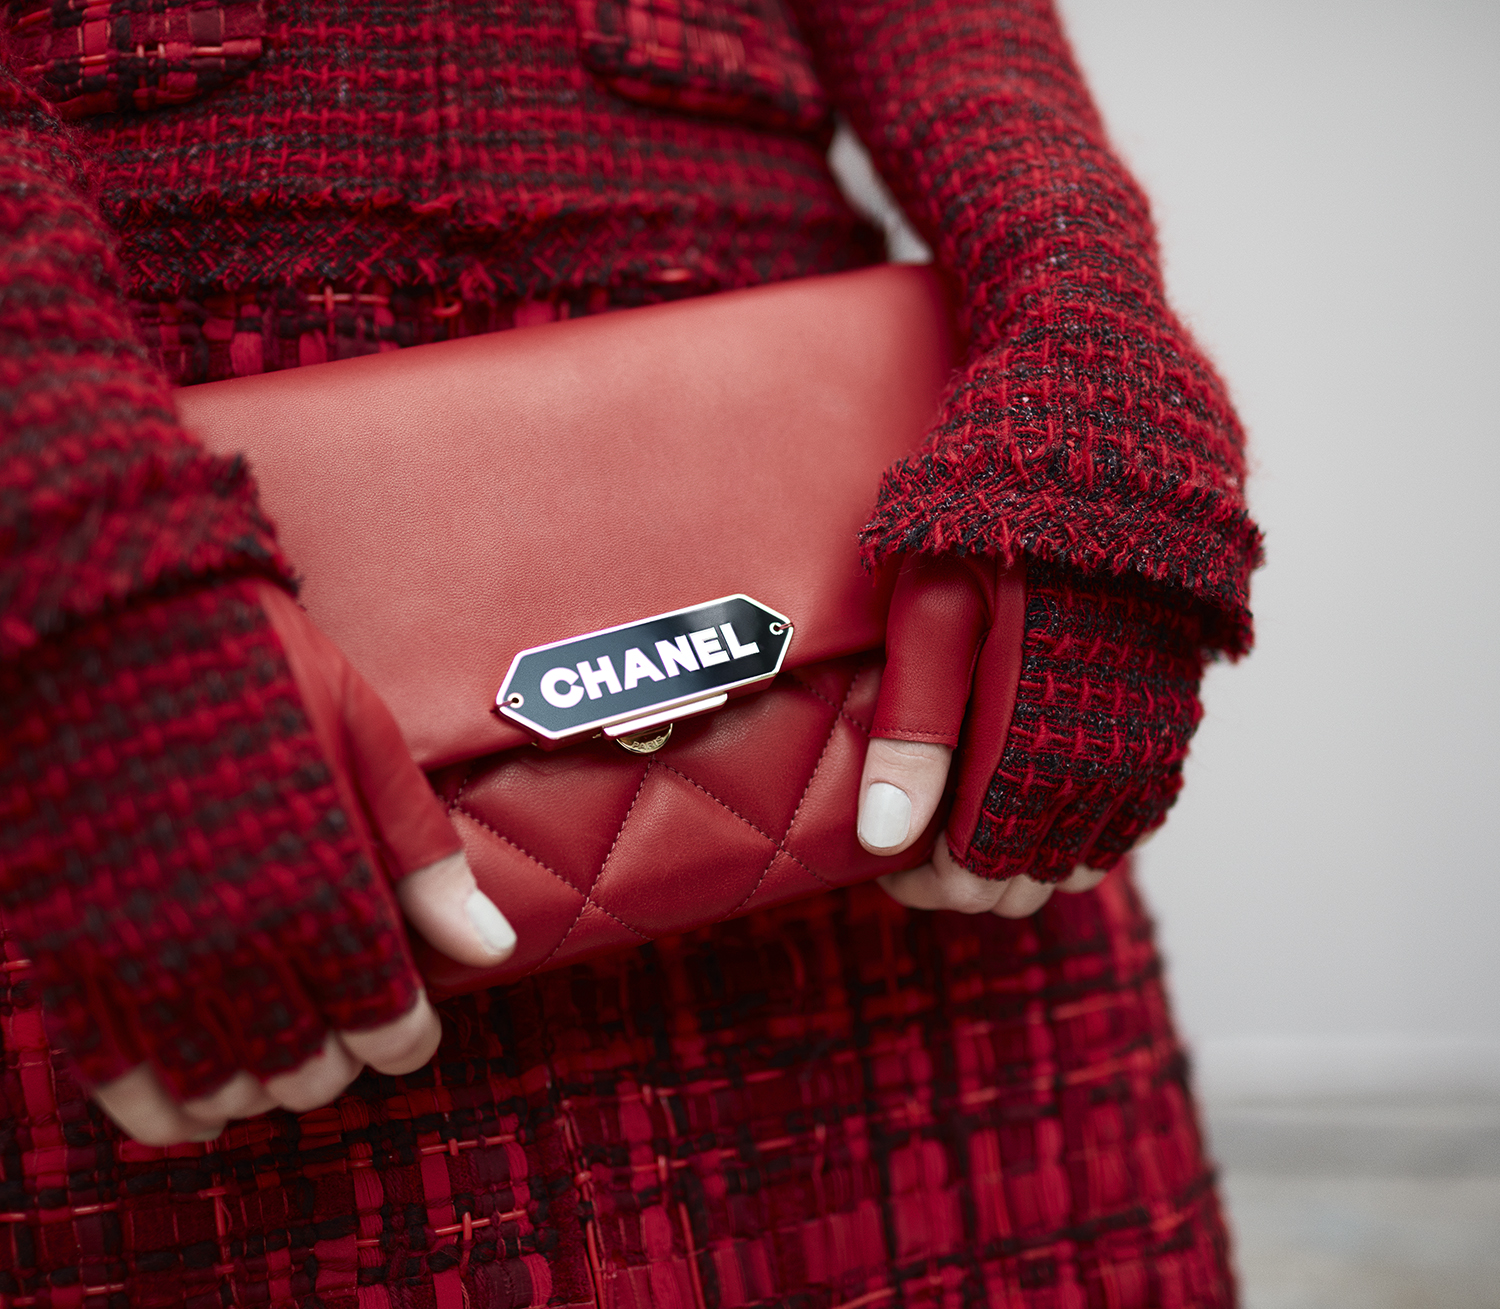 28_backstage-close-up-accessories-by-stcphane-gallois_ld